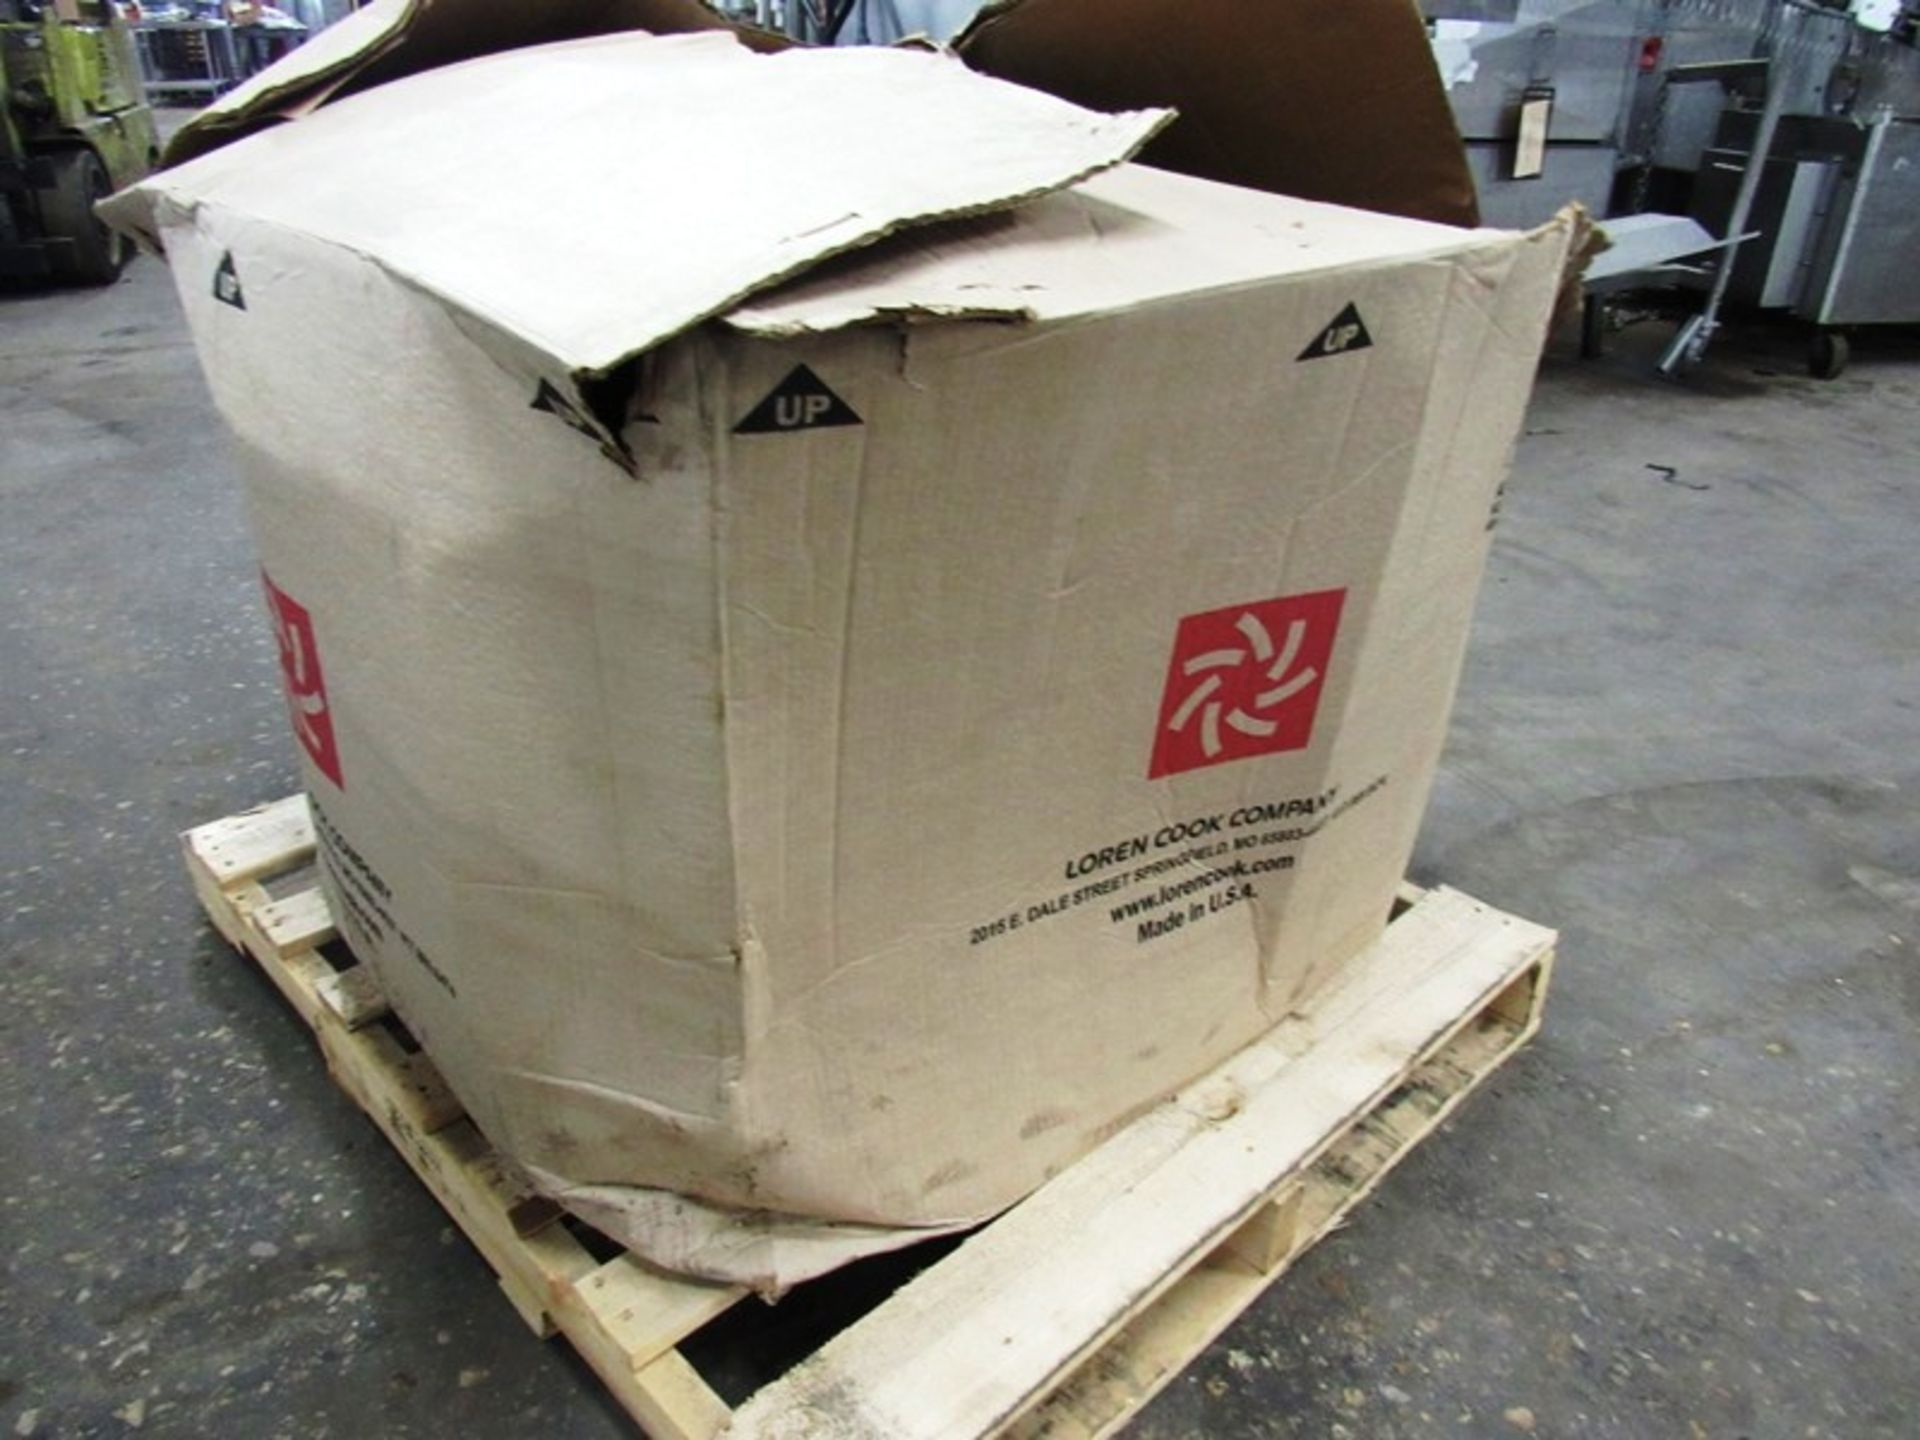 Cook Mdl. 120ACE120C13D Exhaust Fan, Ser. #012SG32092/01/0001801, H.P.0.250, 115 volts, ENCL:ODP, - Image 2 of 7